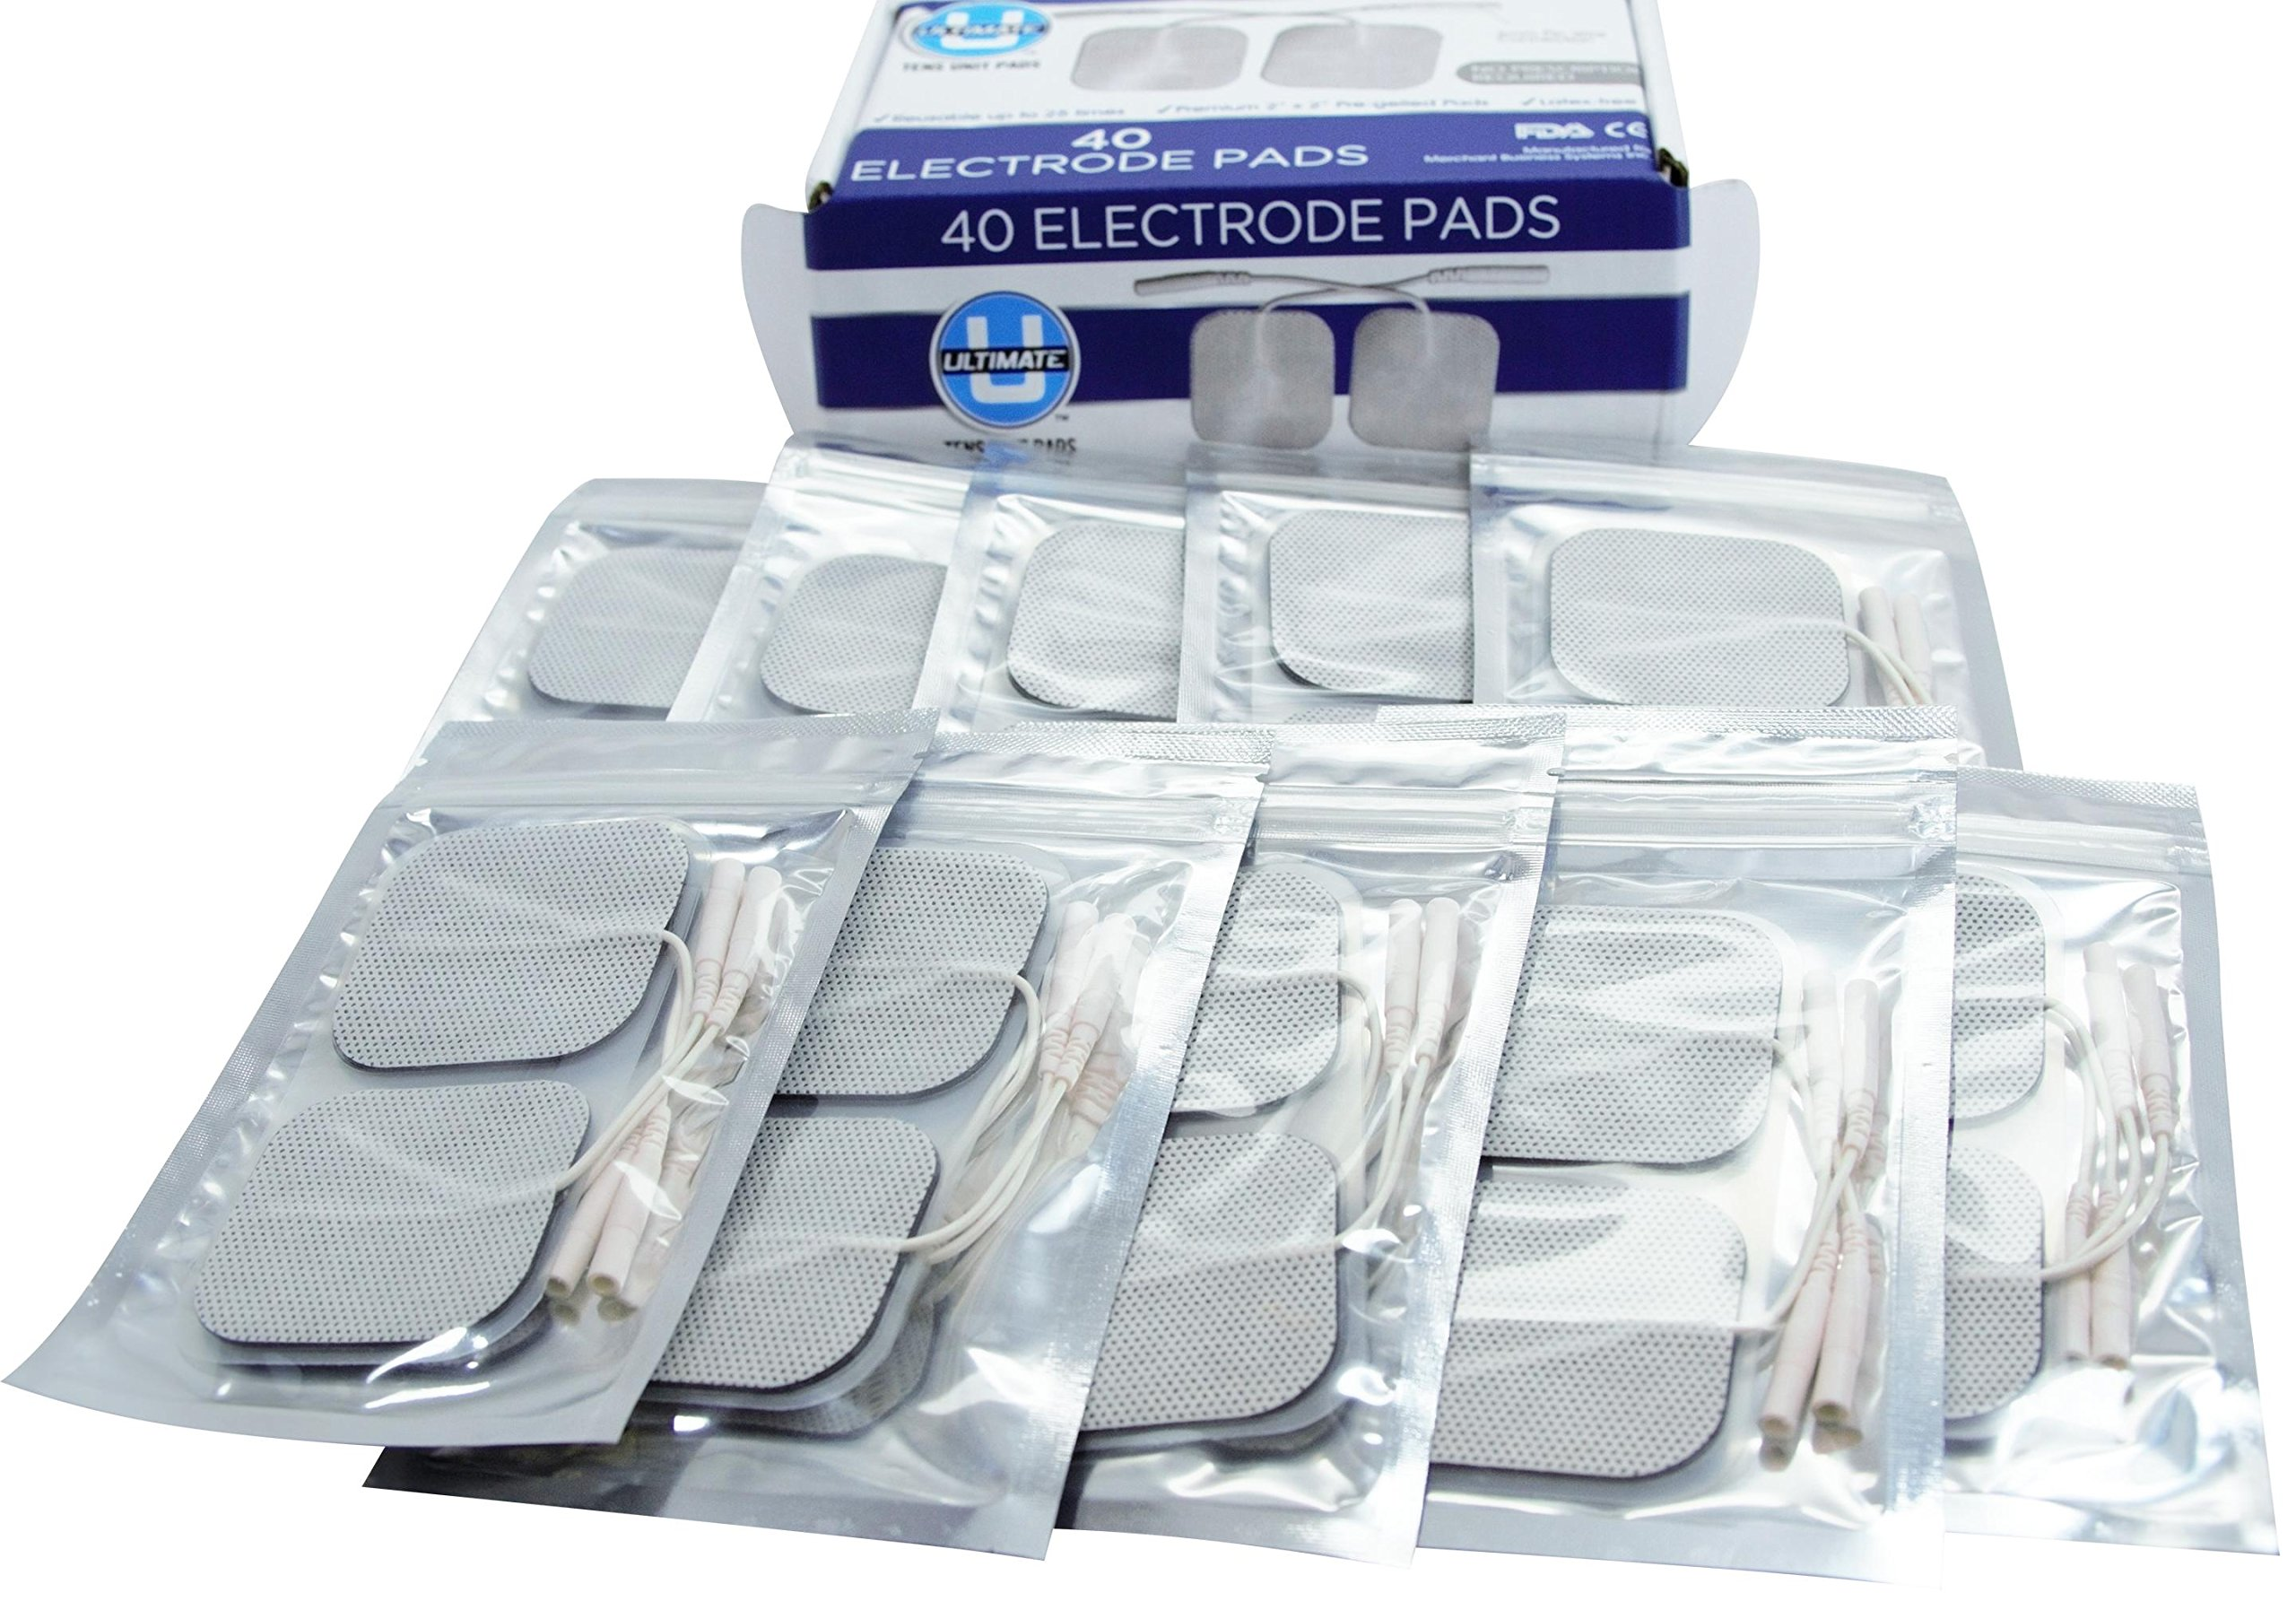 TENS unit Pads 2X2 40 pcs Replacement TENS Electrodes Pads TENS Patches For Electrotherapy